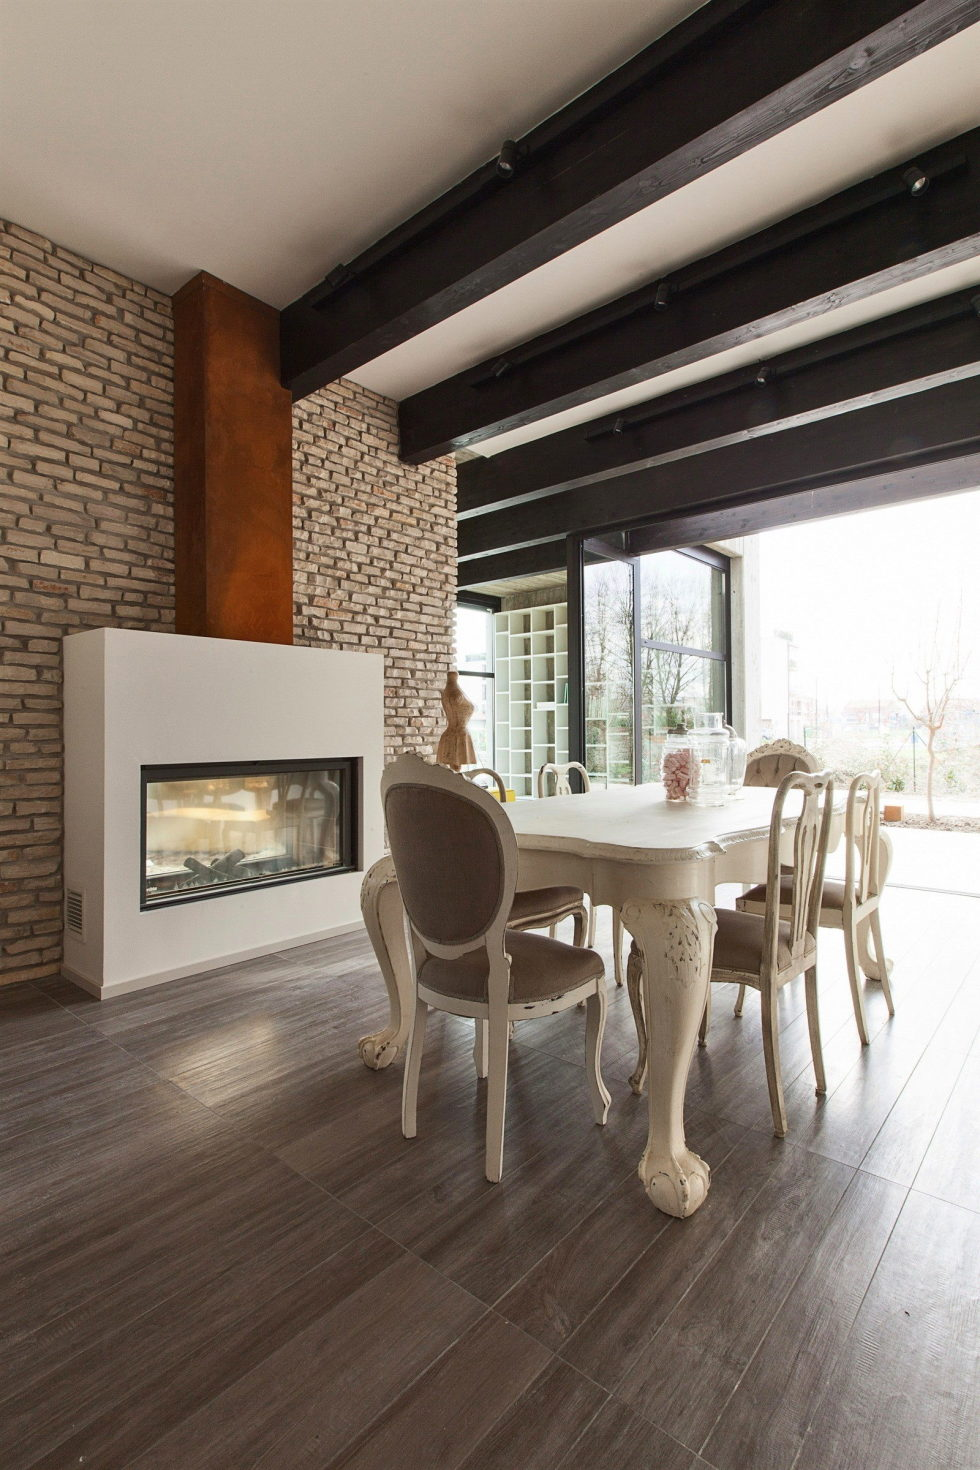 The House For Writer In Bologna From Giraldi Associati Architetti 18